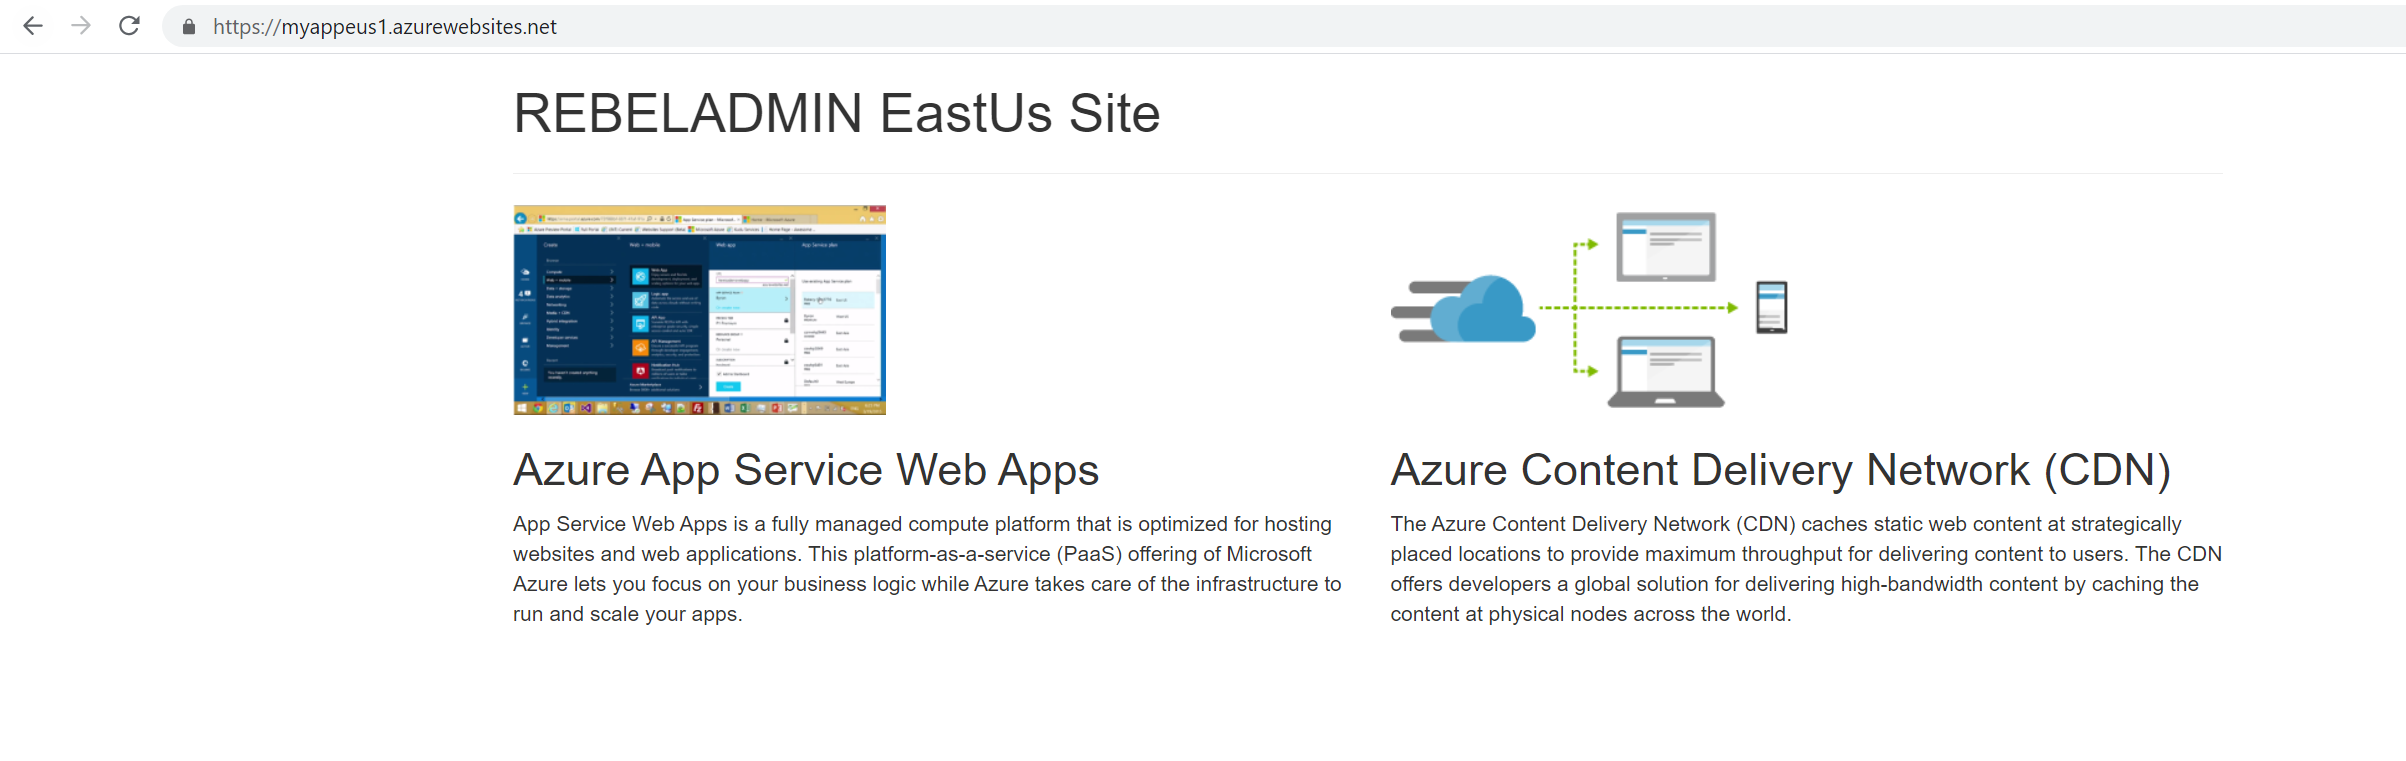 Azure WebApp in East US Region